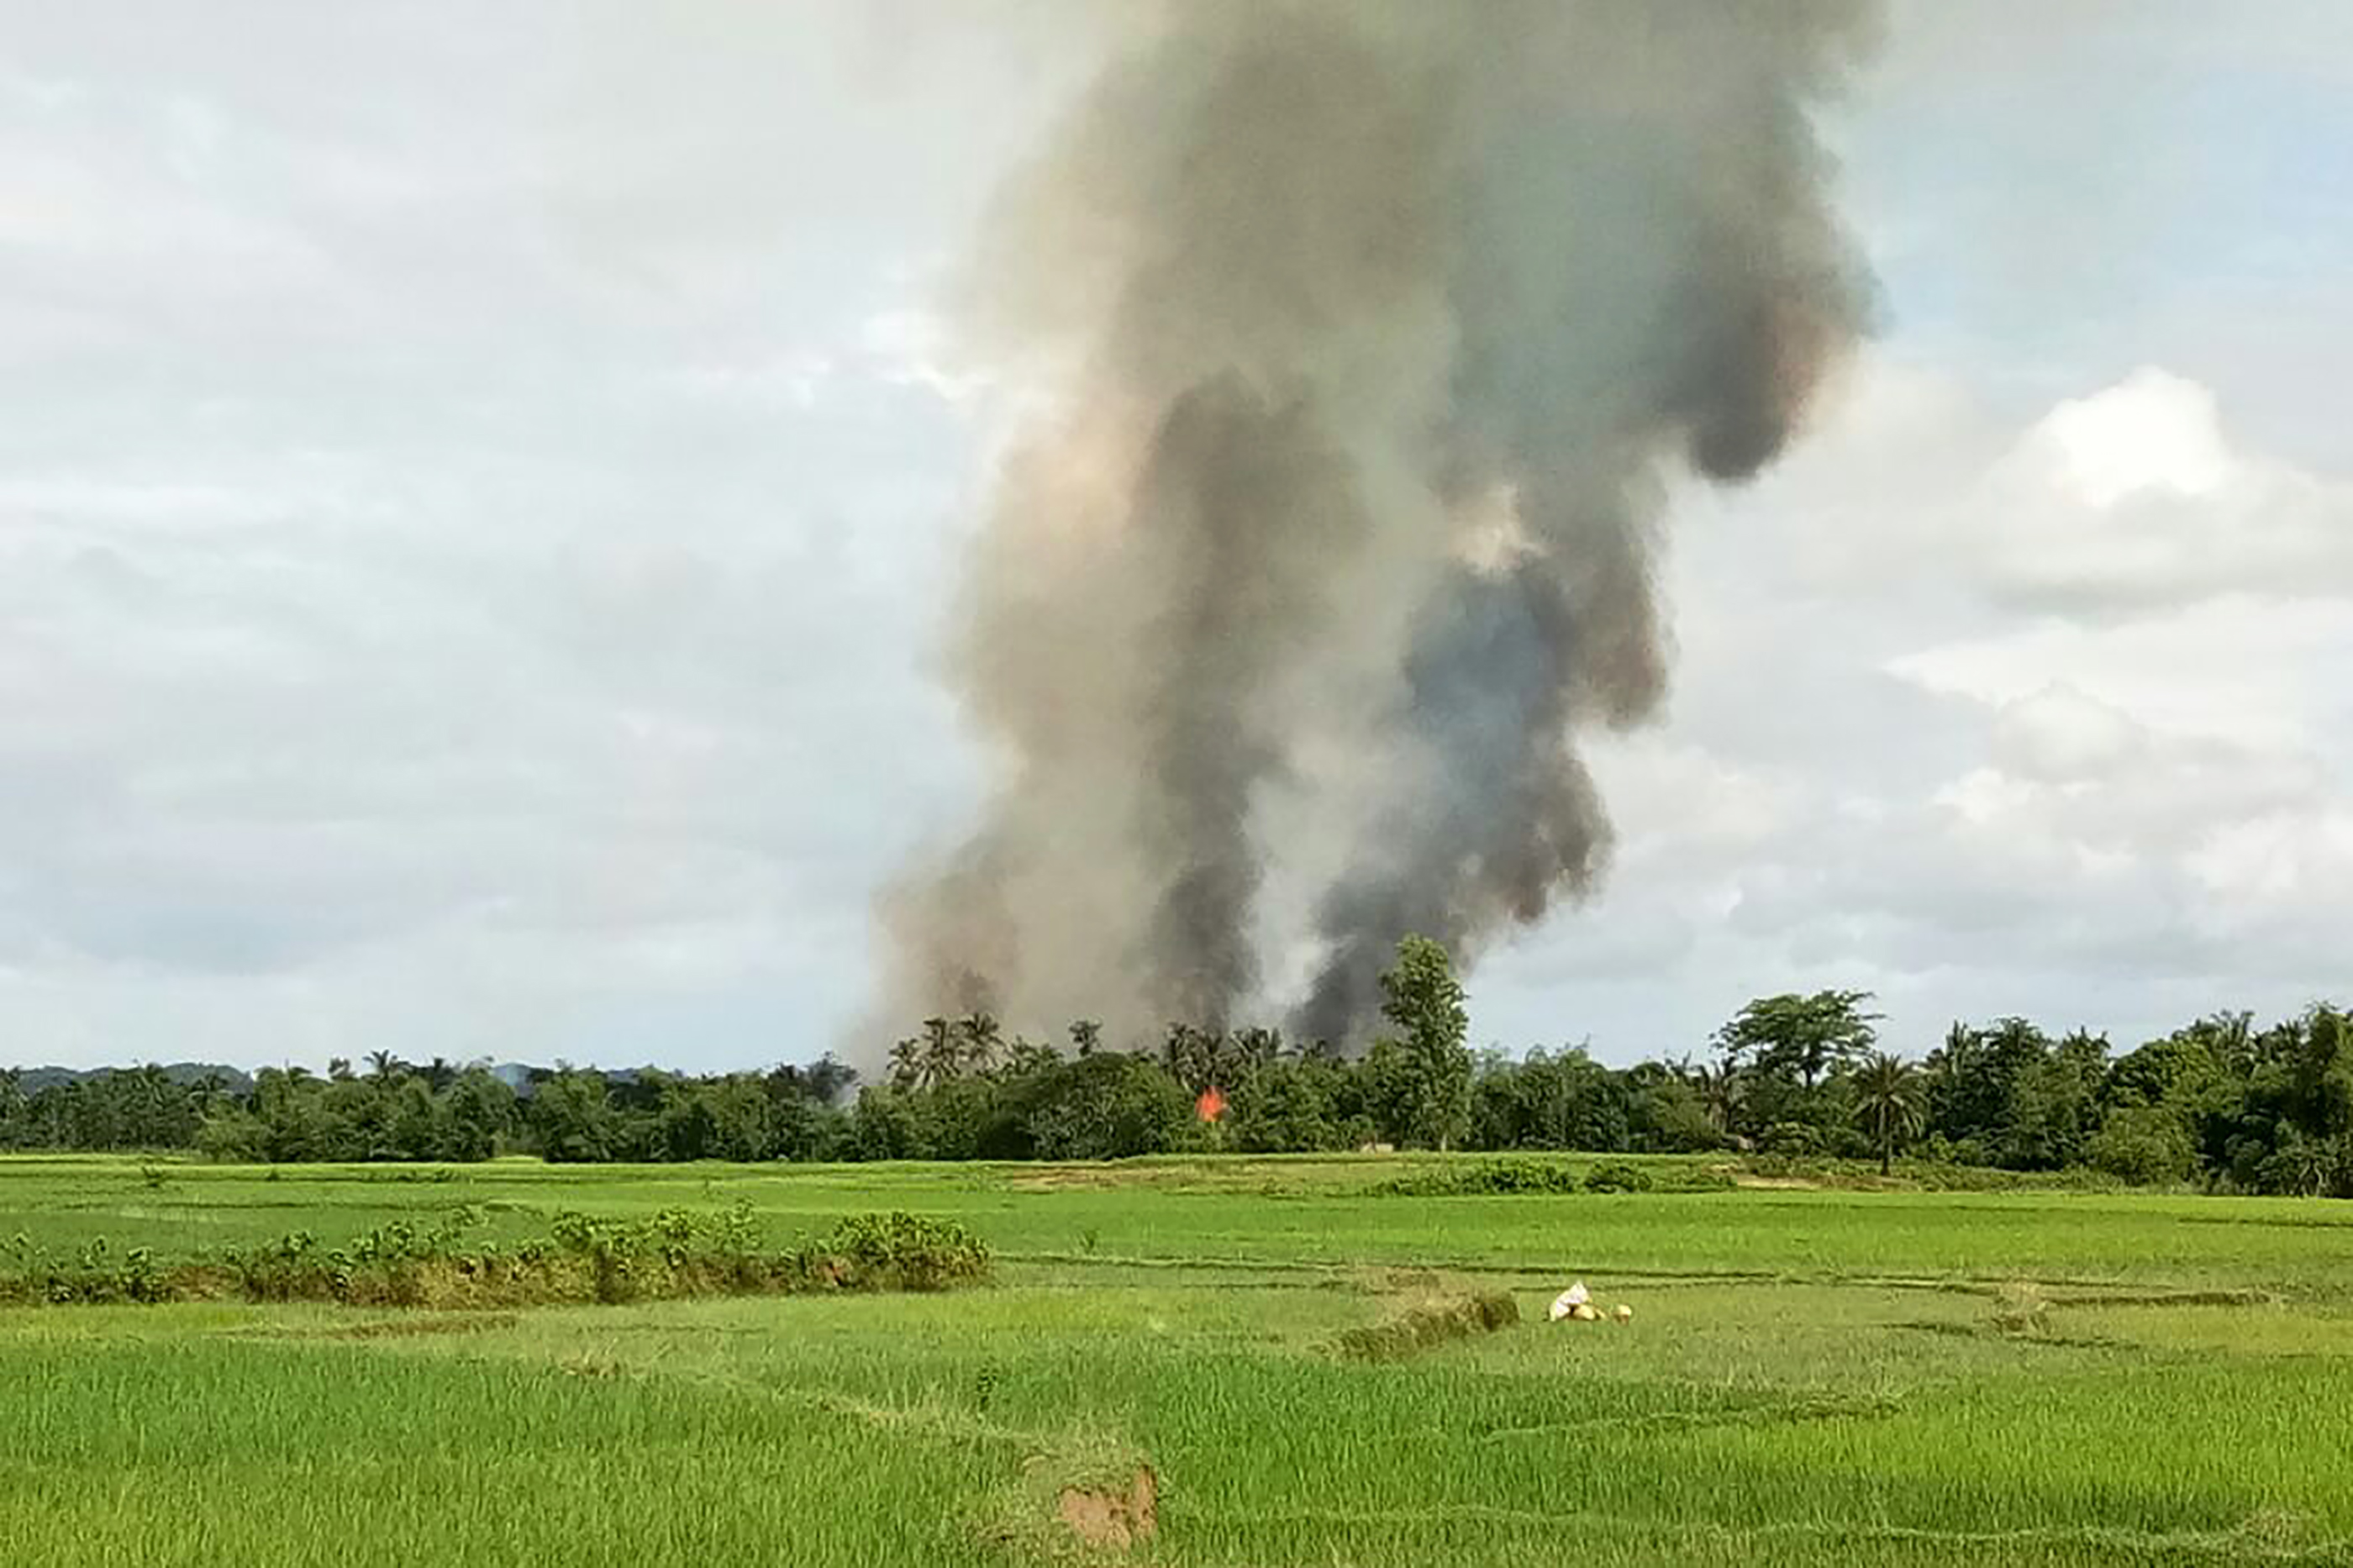 Smoke rises from what is believed to be a burning village near Maungdaw in Myanmar's Rakhine state on Aug. 30, 2017.